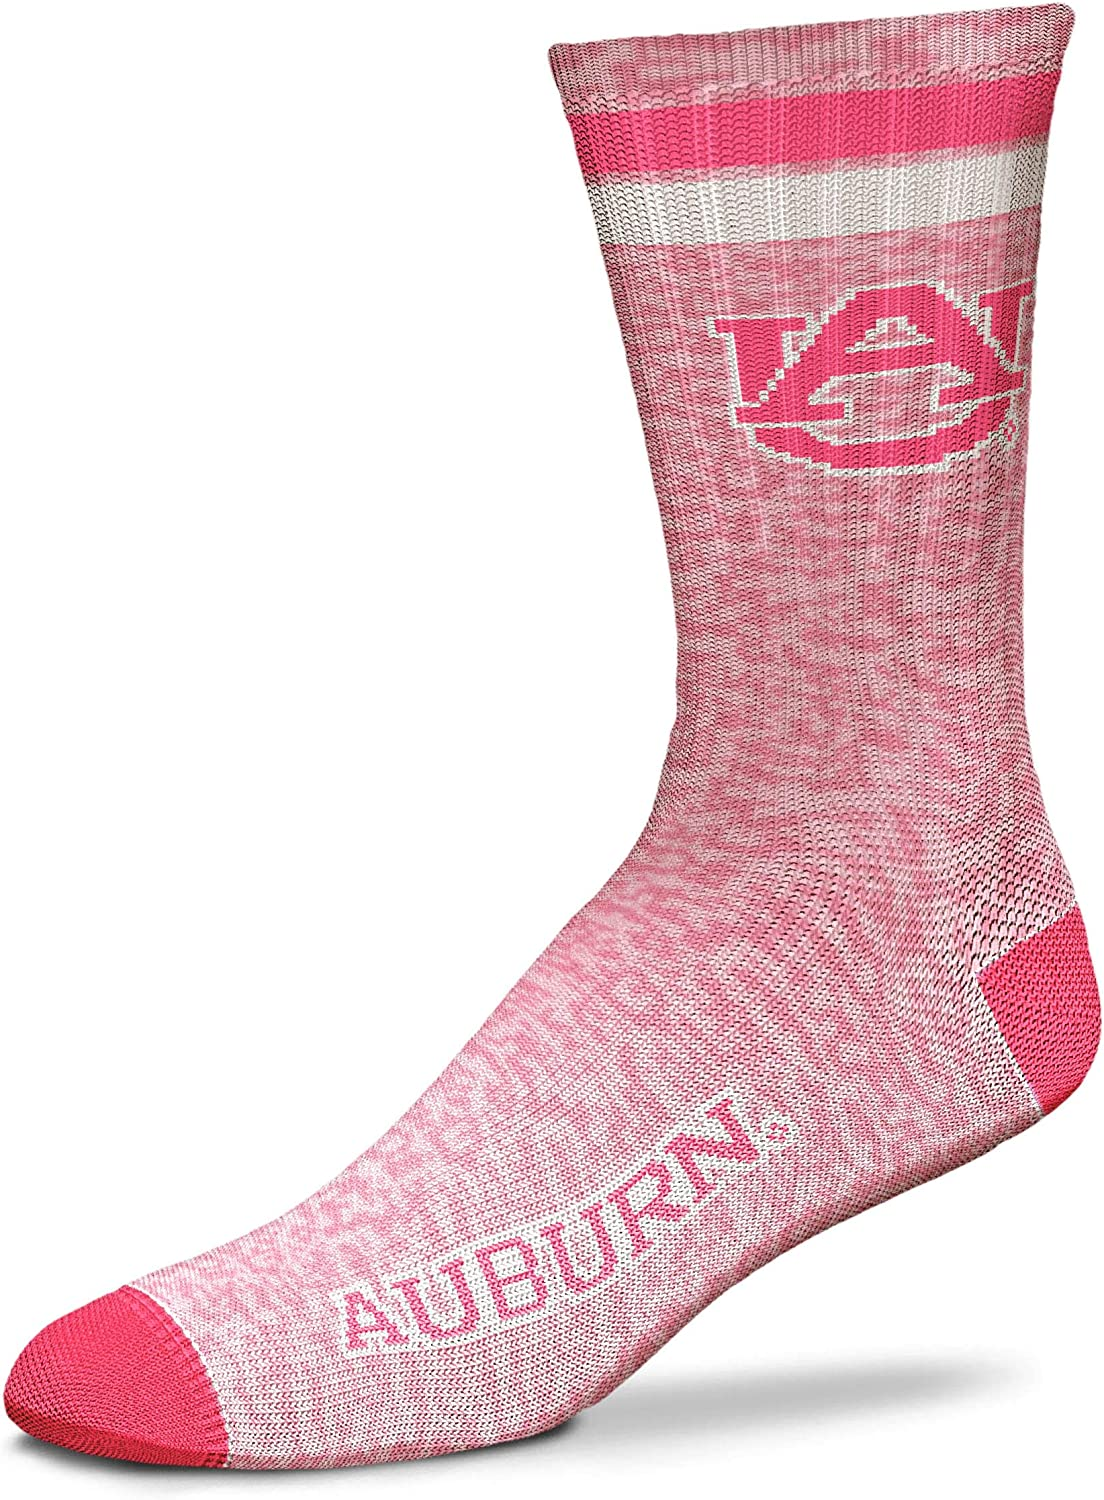 For Bare Feet NCAA Pretty in Pink Womens Crew Socks